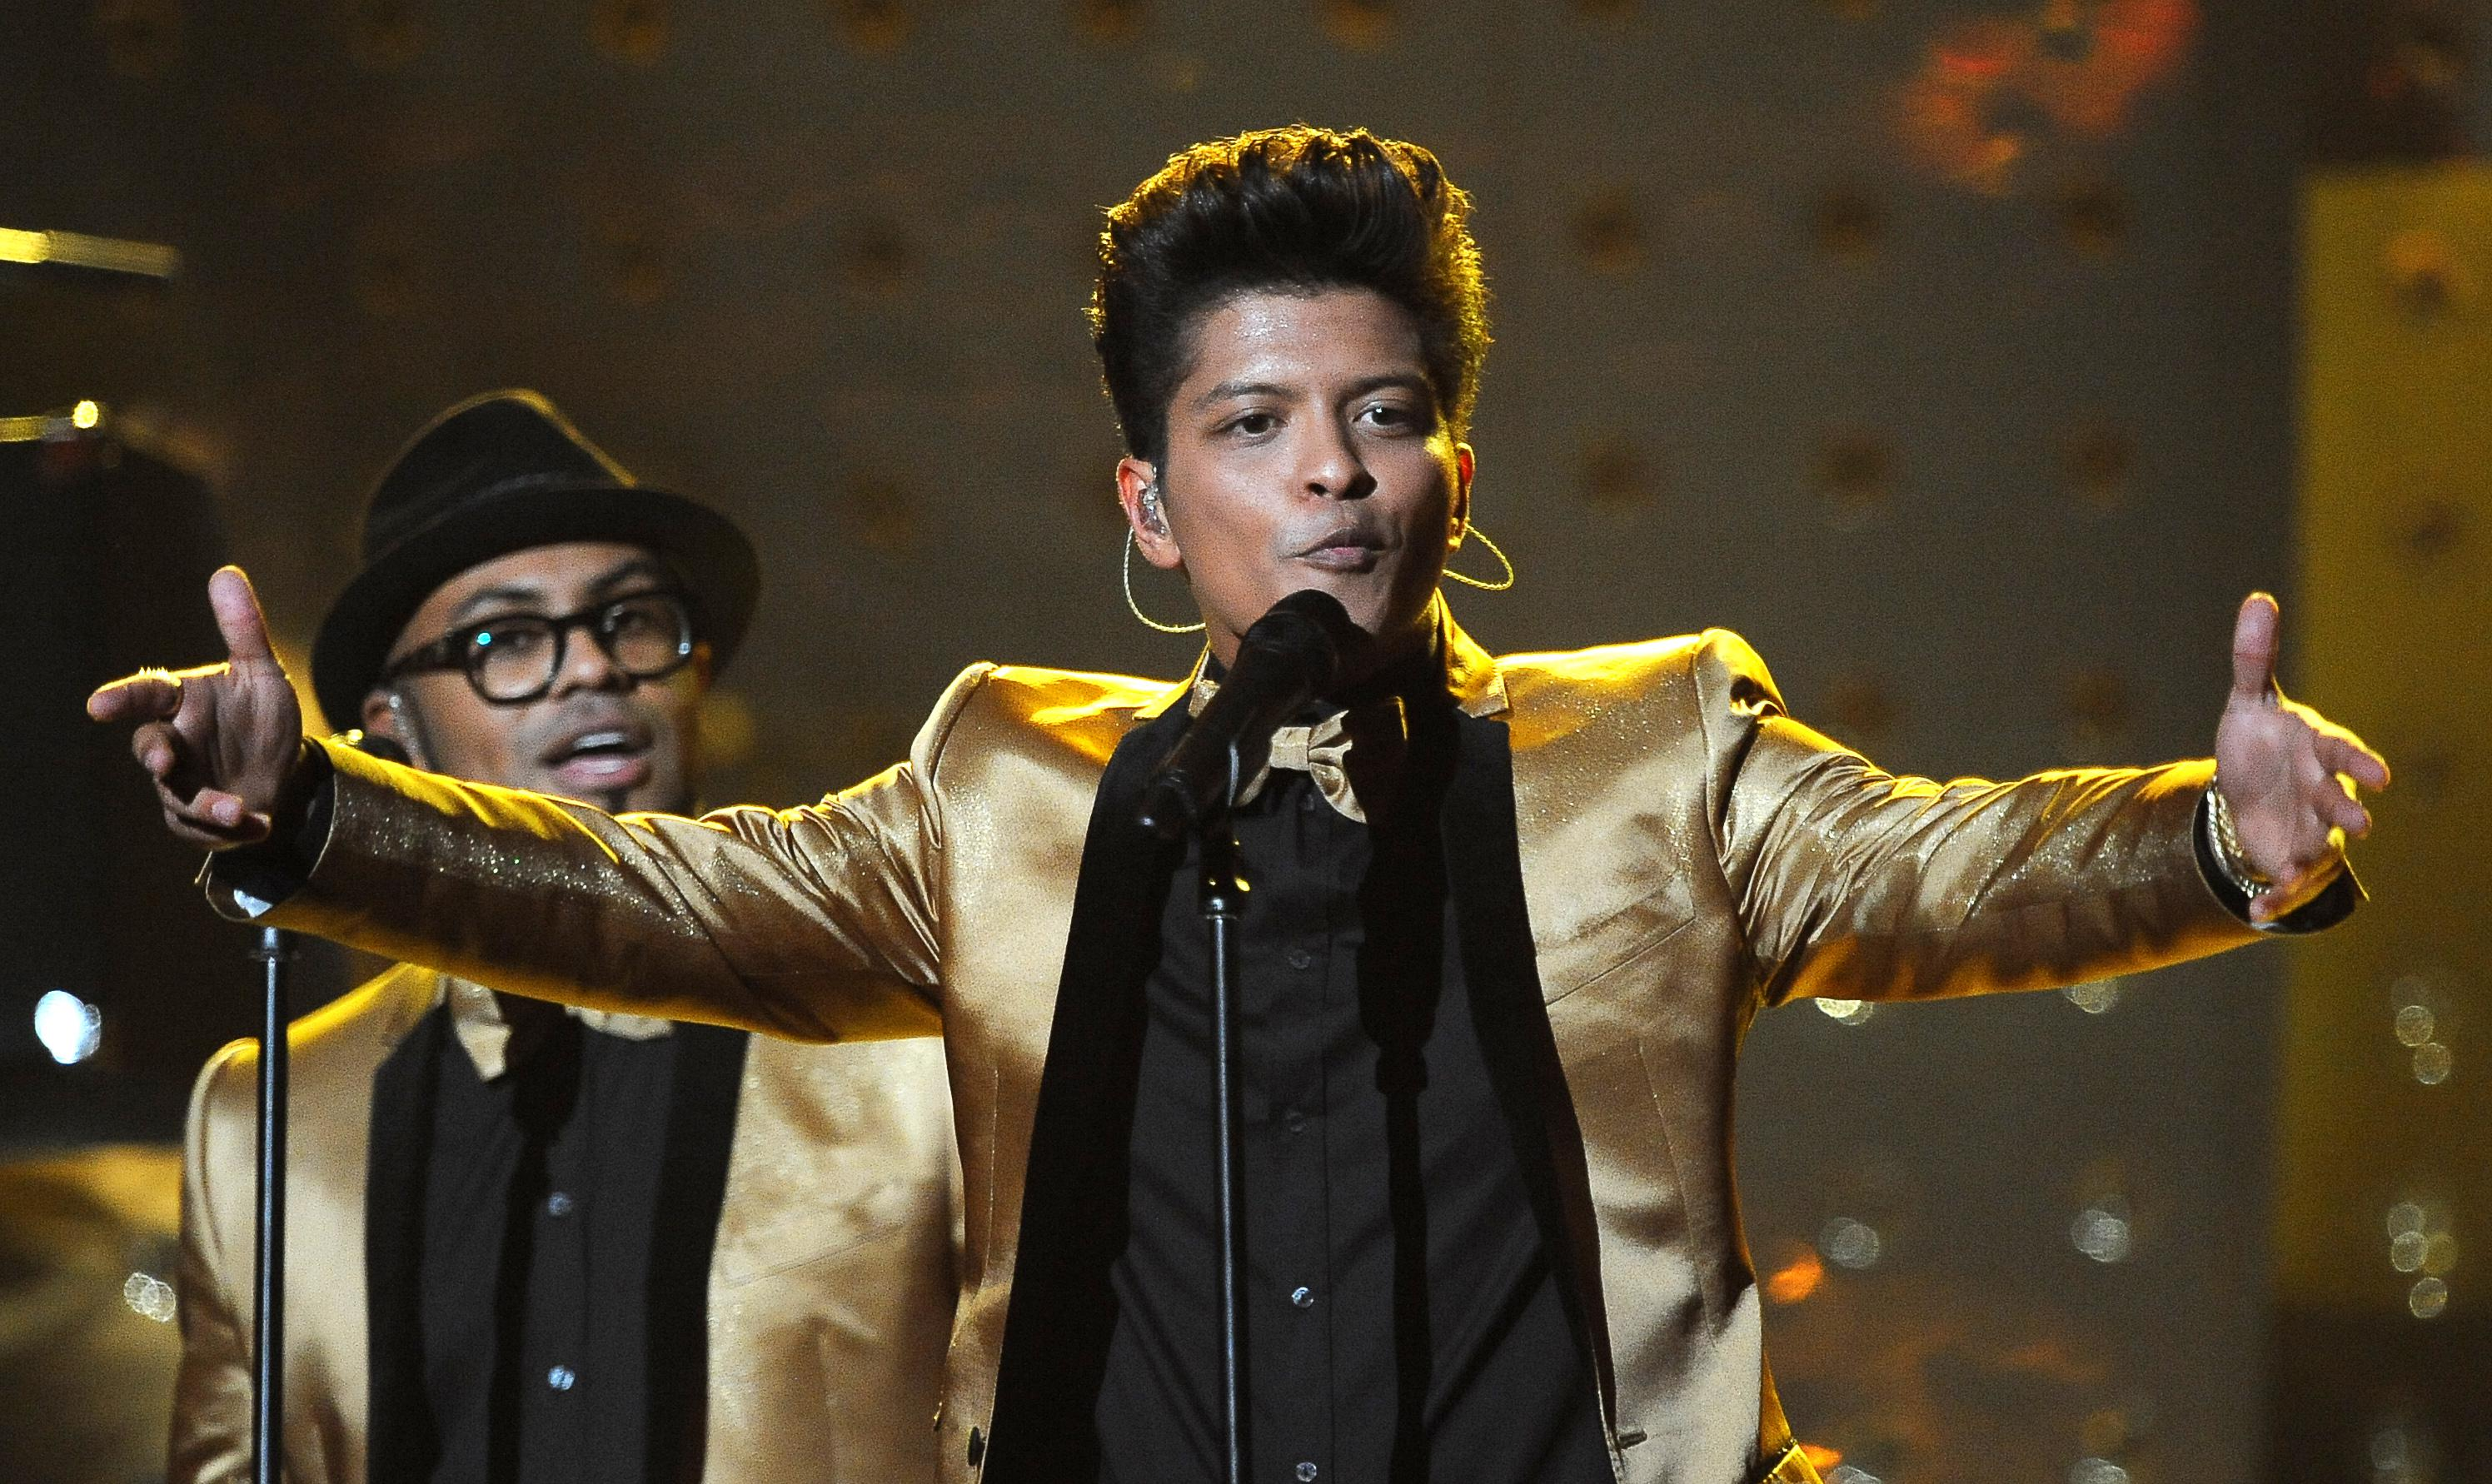 Bruno Mars performs at the Staples Cente